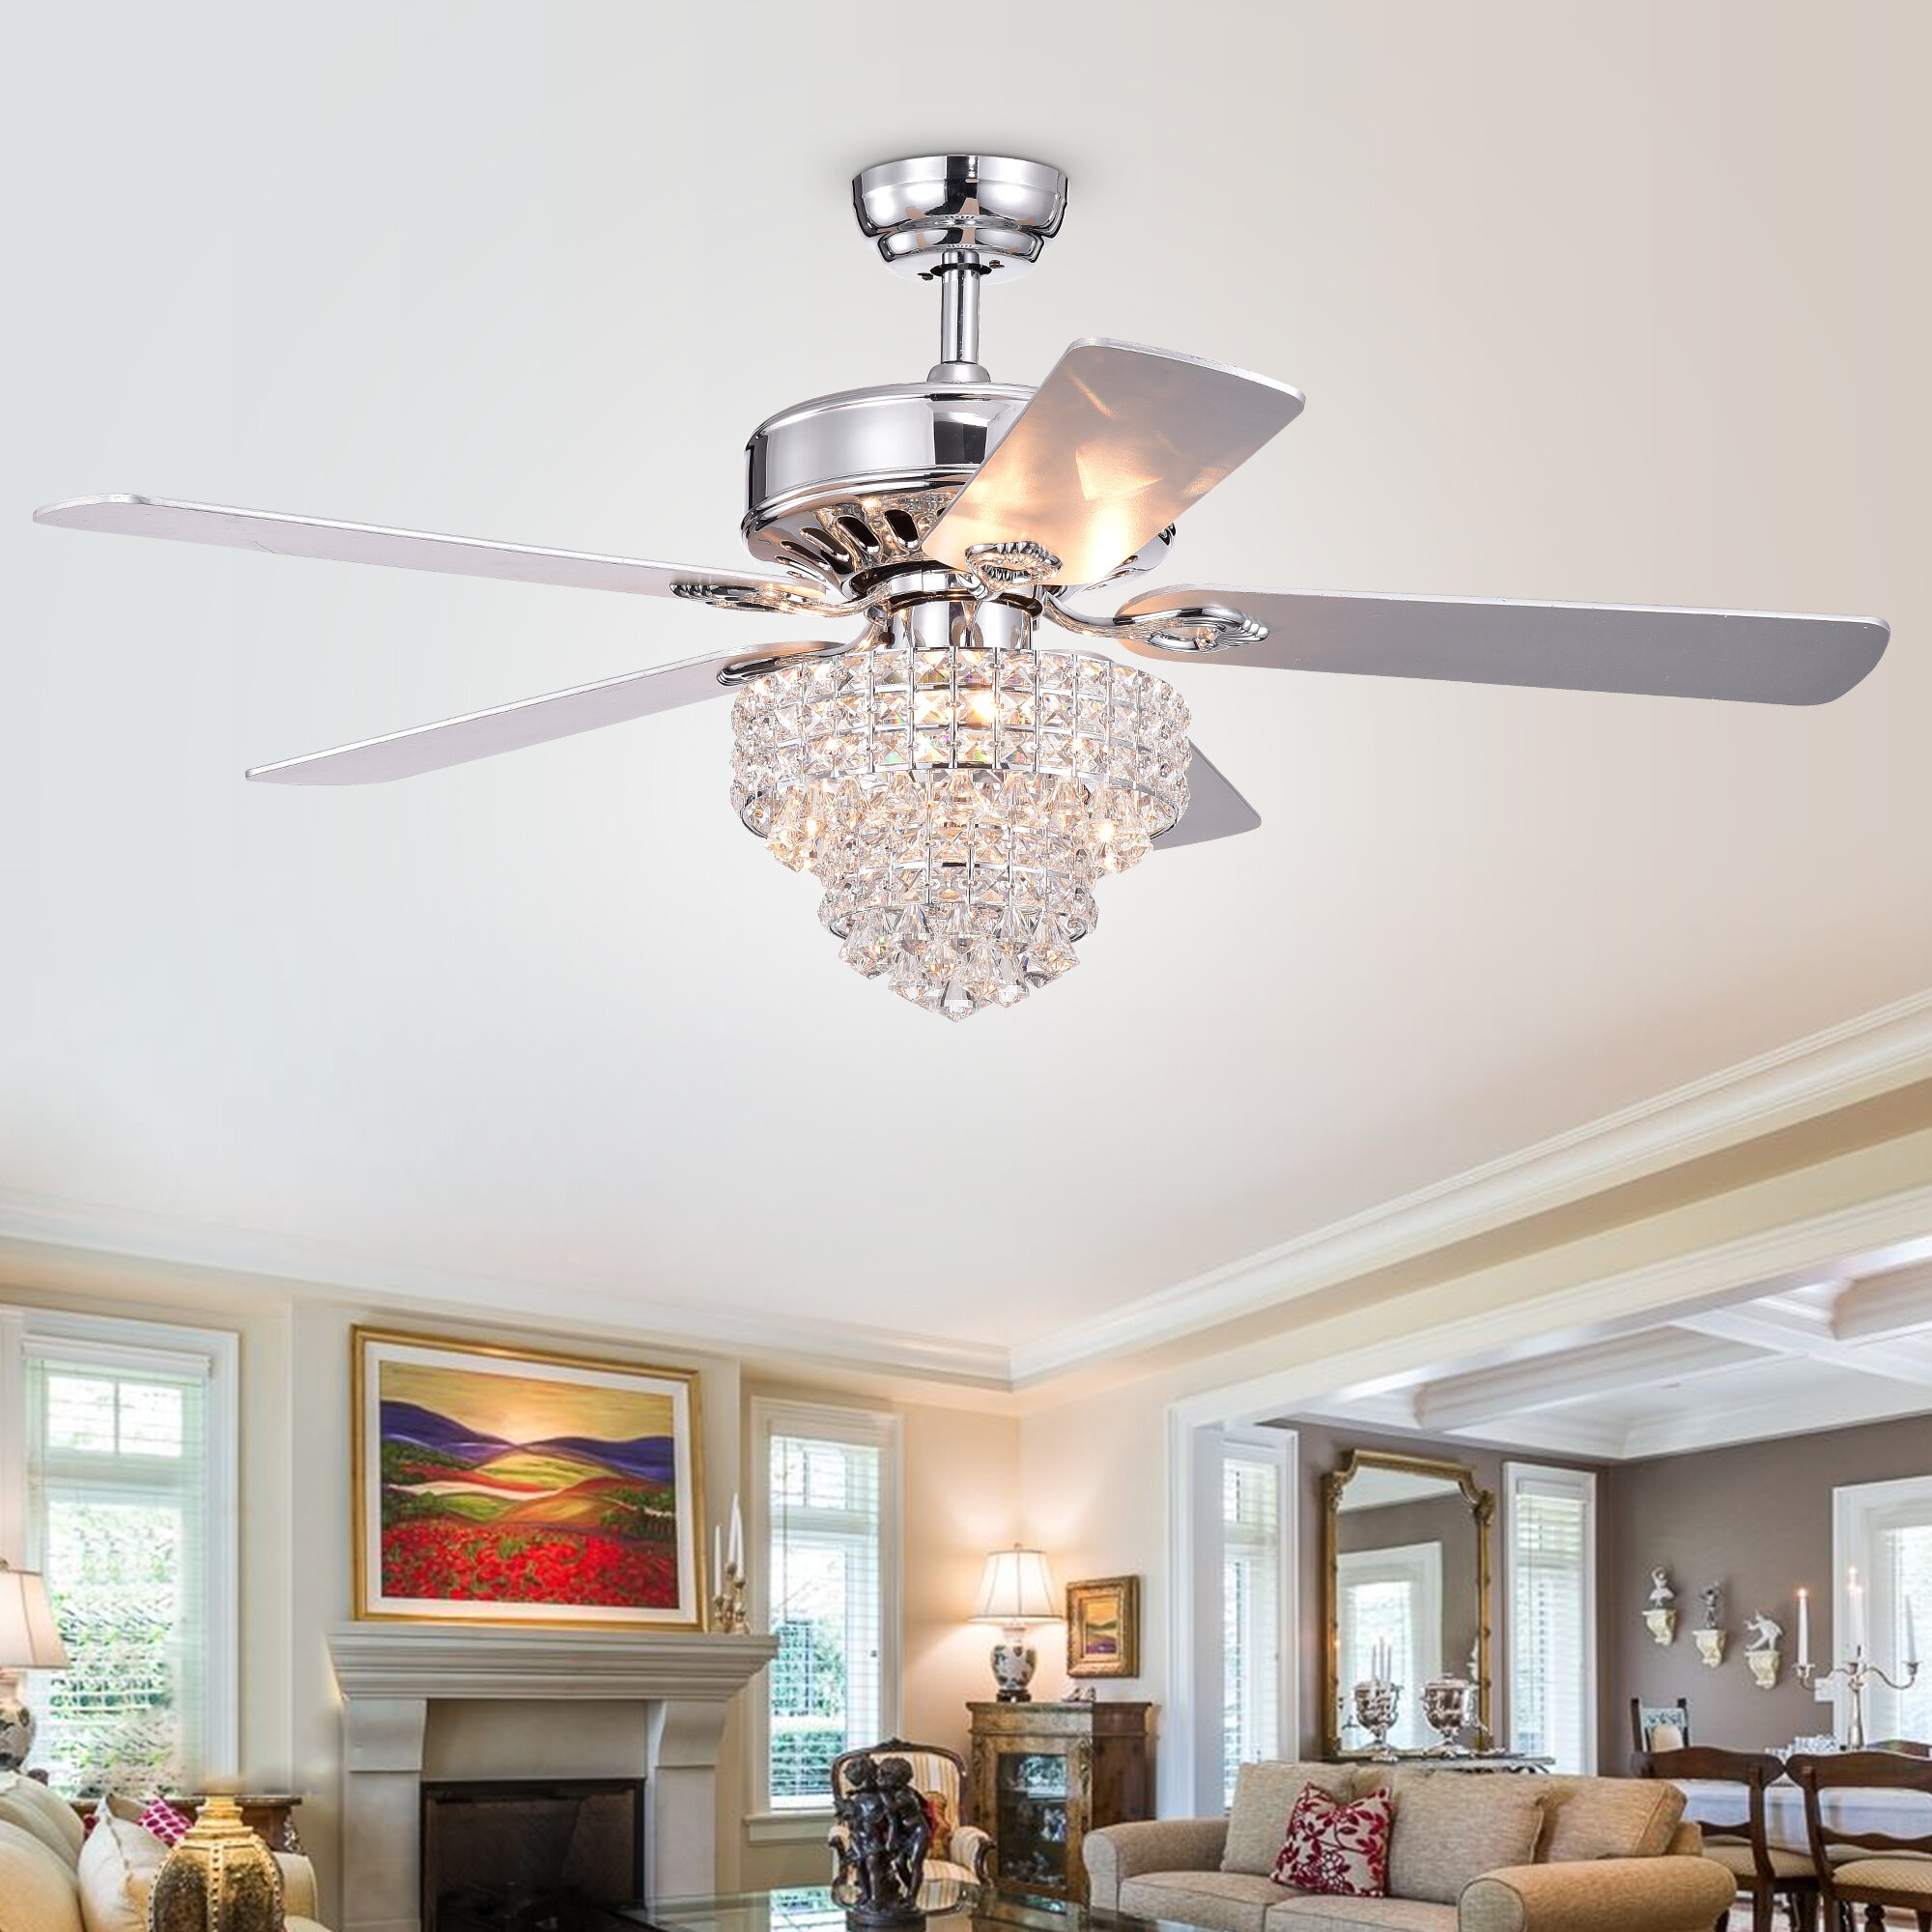 House Of Hampton 52 Scheid 5 Blade Crystal Ceiling Fan With Remote Control And Light Kit Included Reviews Wayfair Ca